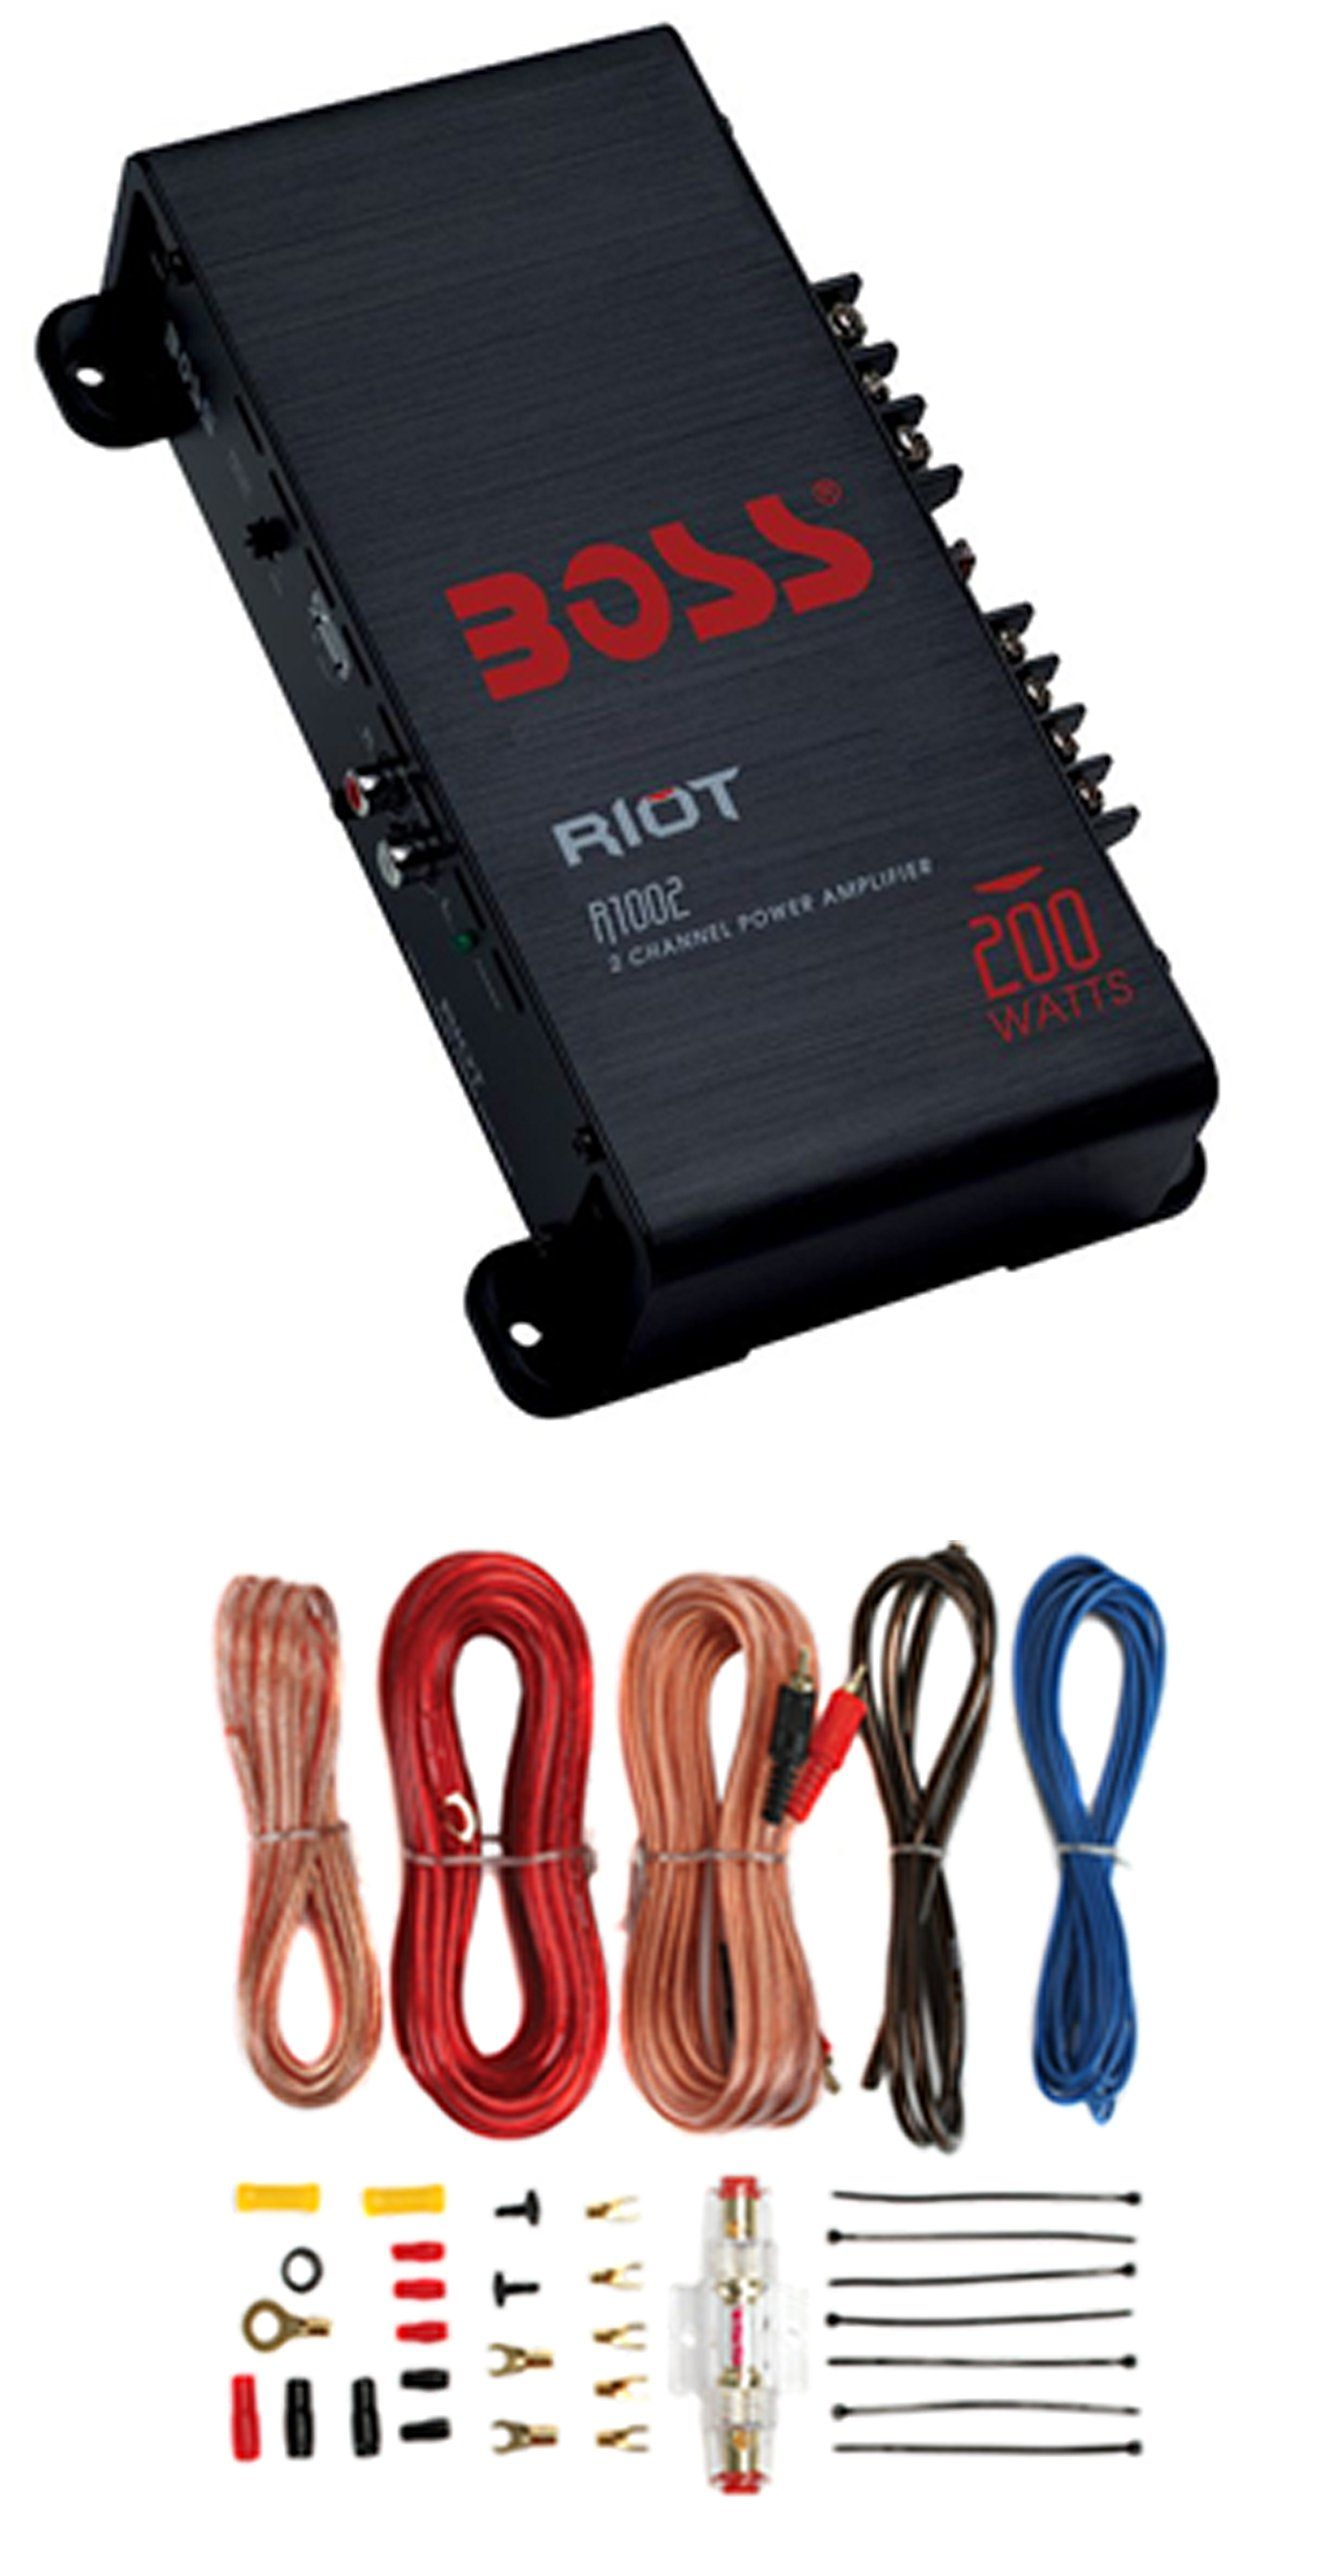 Pin By Car Electronics On Amplifier Pinterest Audio How To Install In Part Number New Boss Riot 400 Watt 4 Channel 1 X Theboss Features A Max Power Handling Of